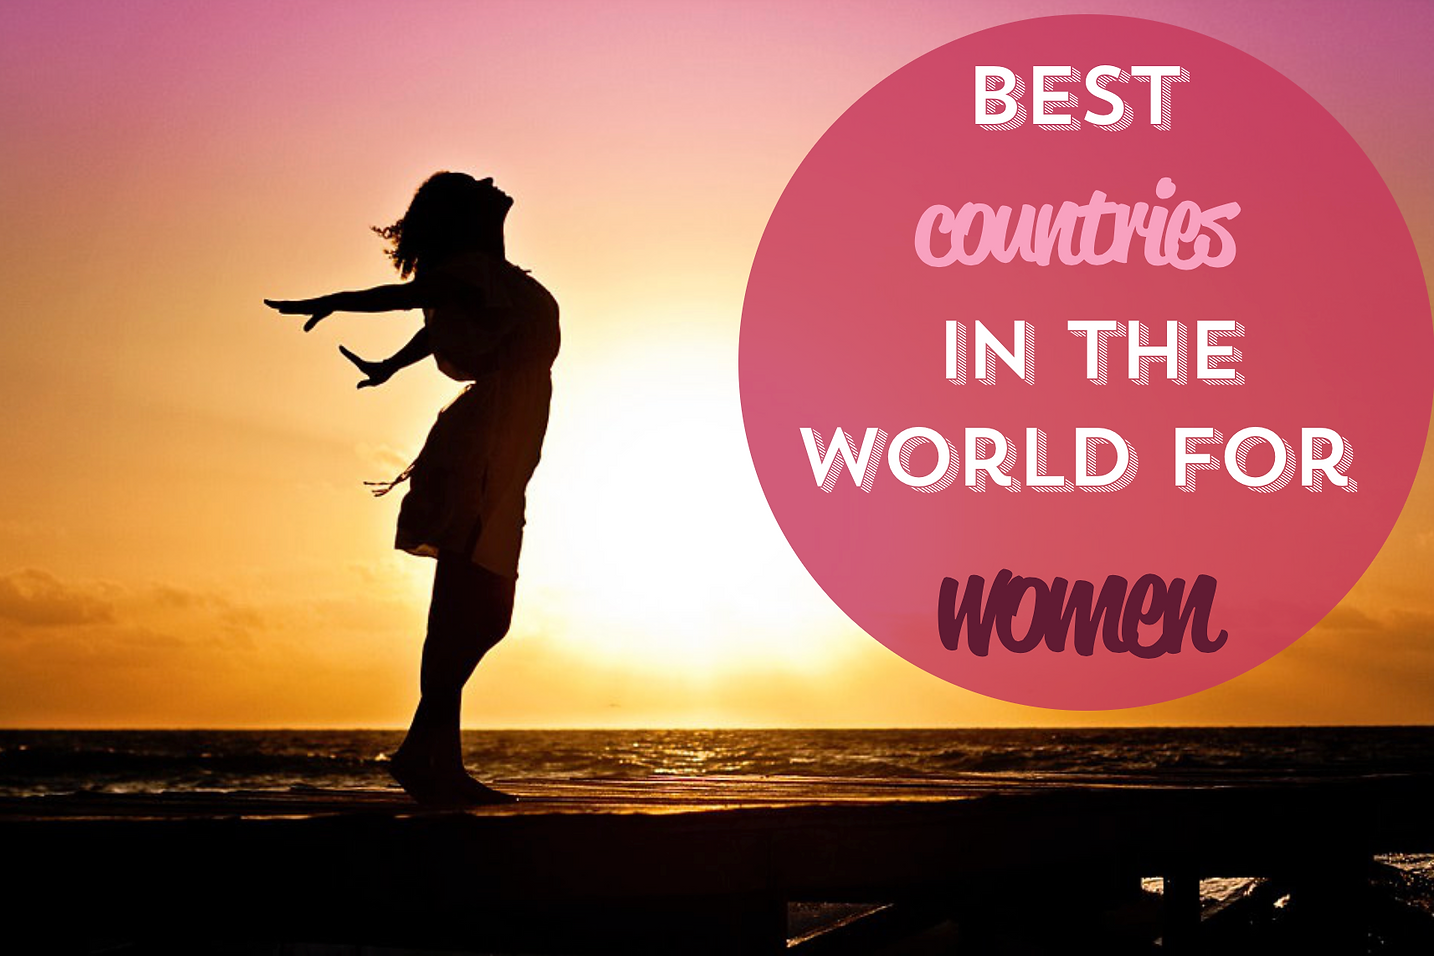 Best countries in the world for women